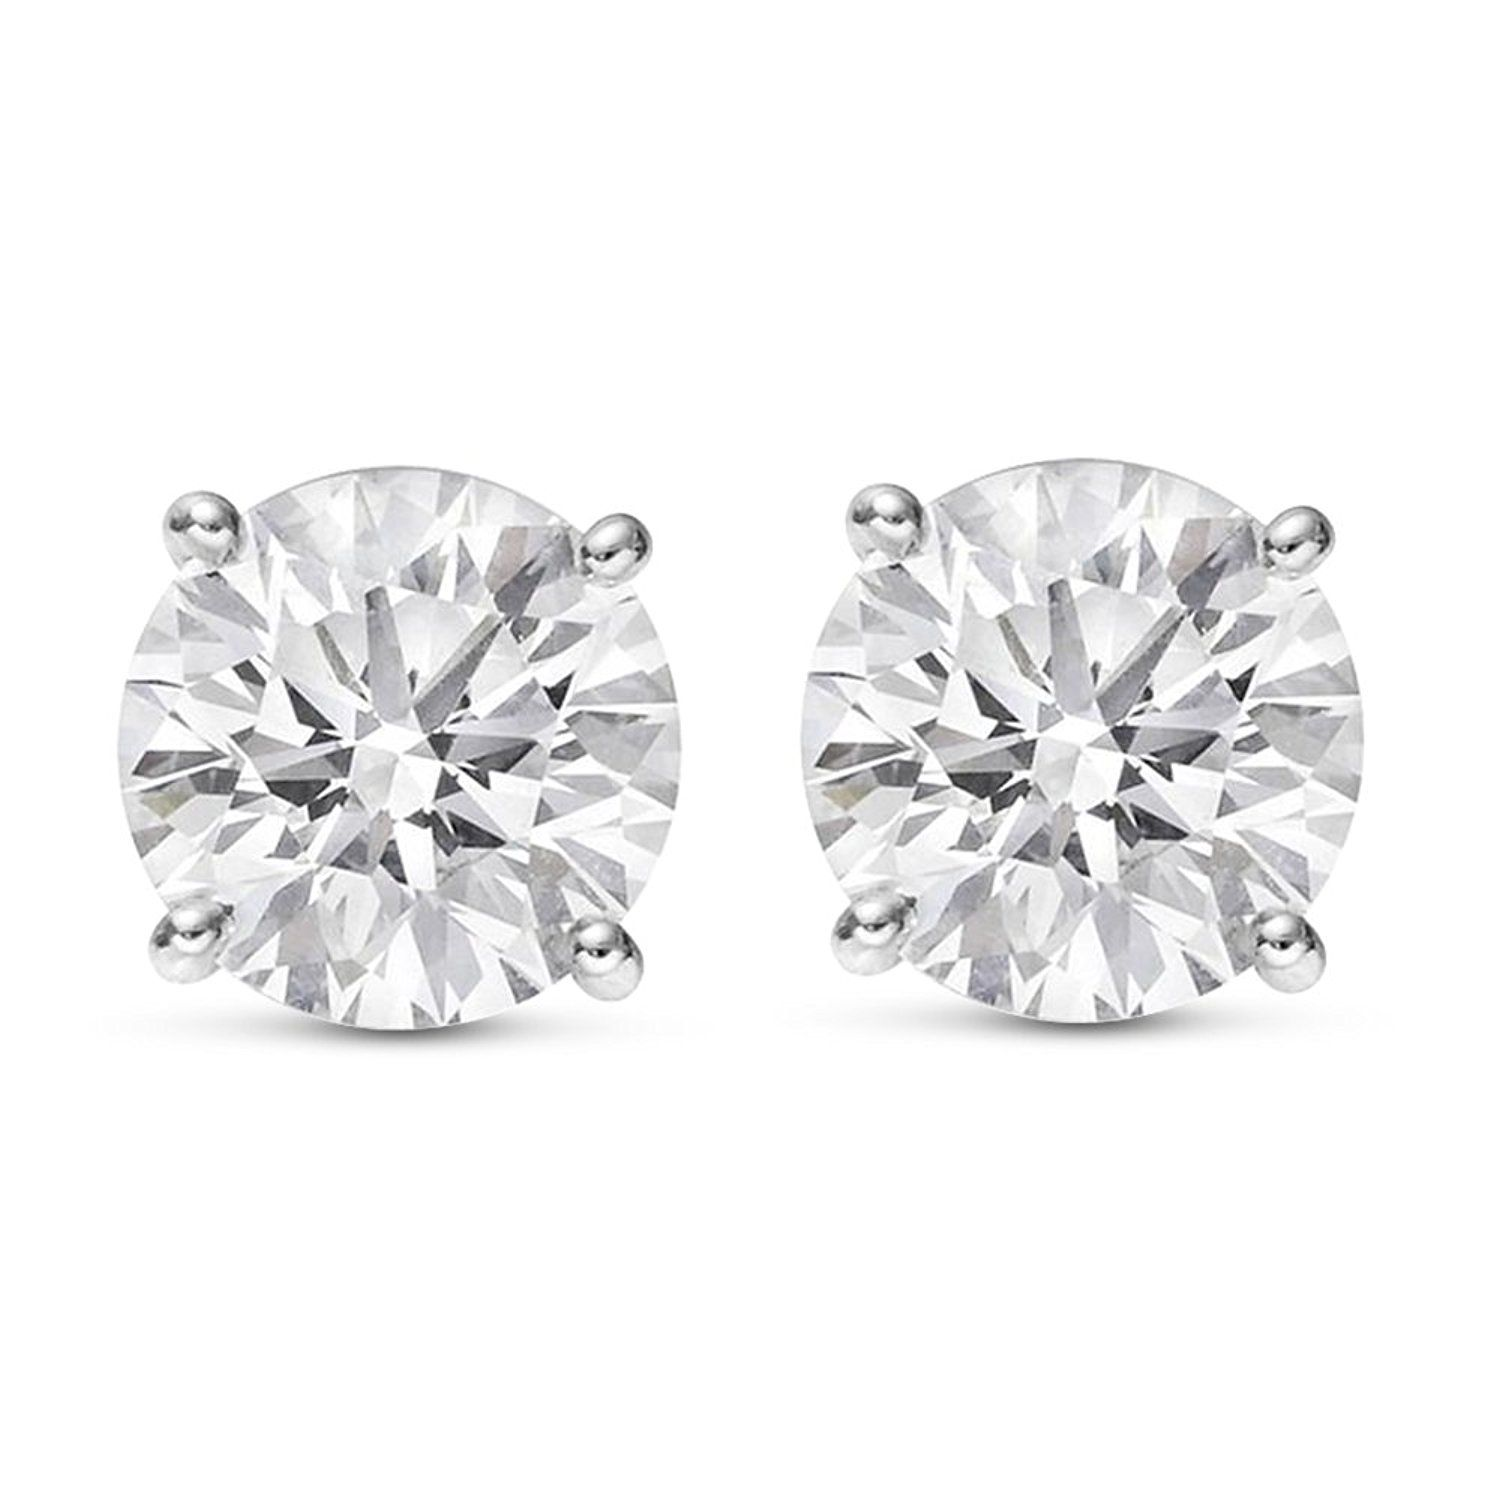 1 4 Carat Solitaire Diamond Stud Earrings Round Brilliant Shape 4 Prong Push Back Diamond Solitaire Earrings Pyramid Stud Earrings Diamond Earrings Studs Round